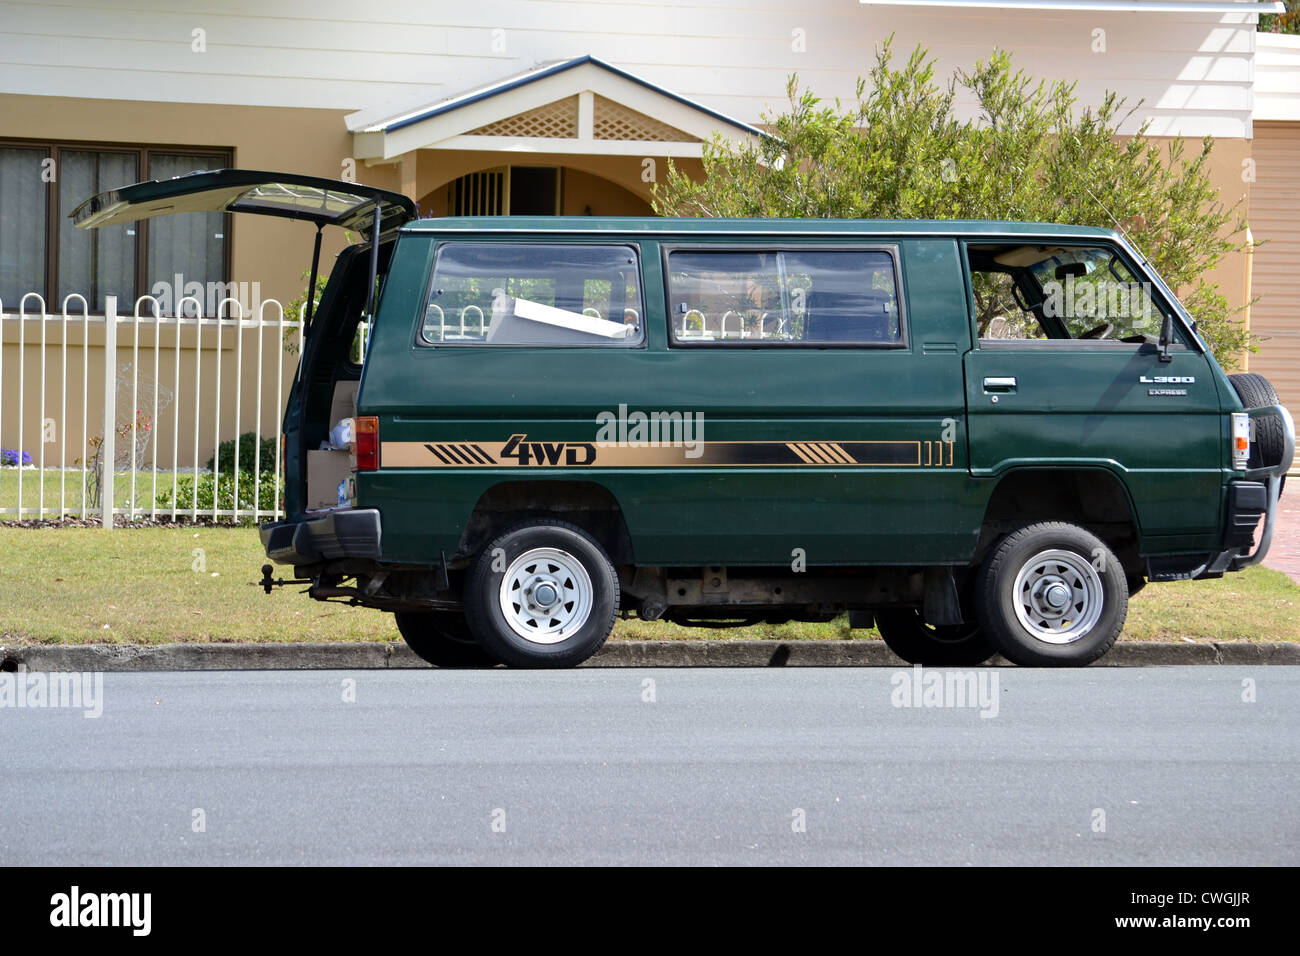 1985 Mitsubishi L300 Express Stock Photo: 50153007